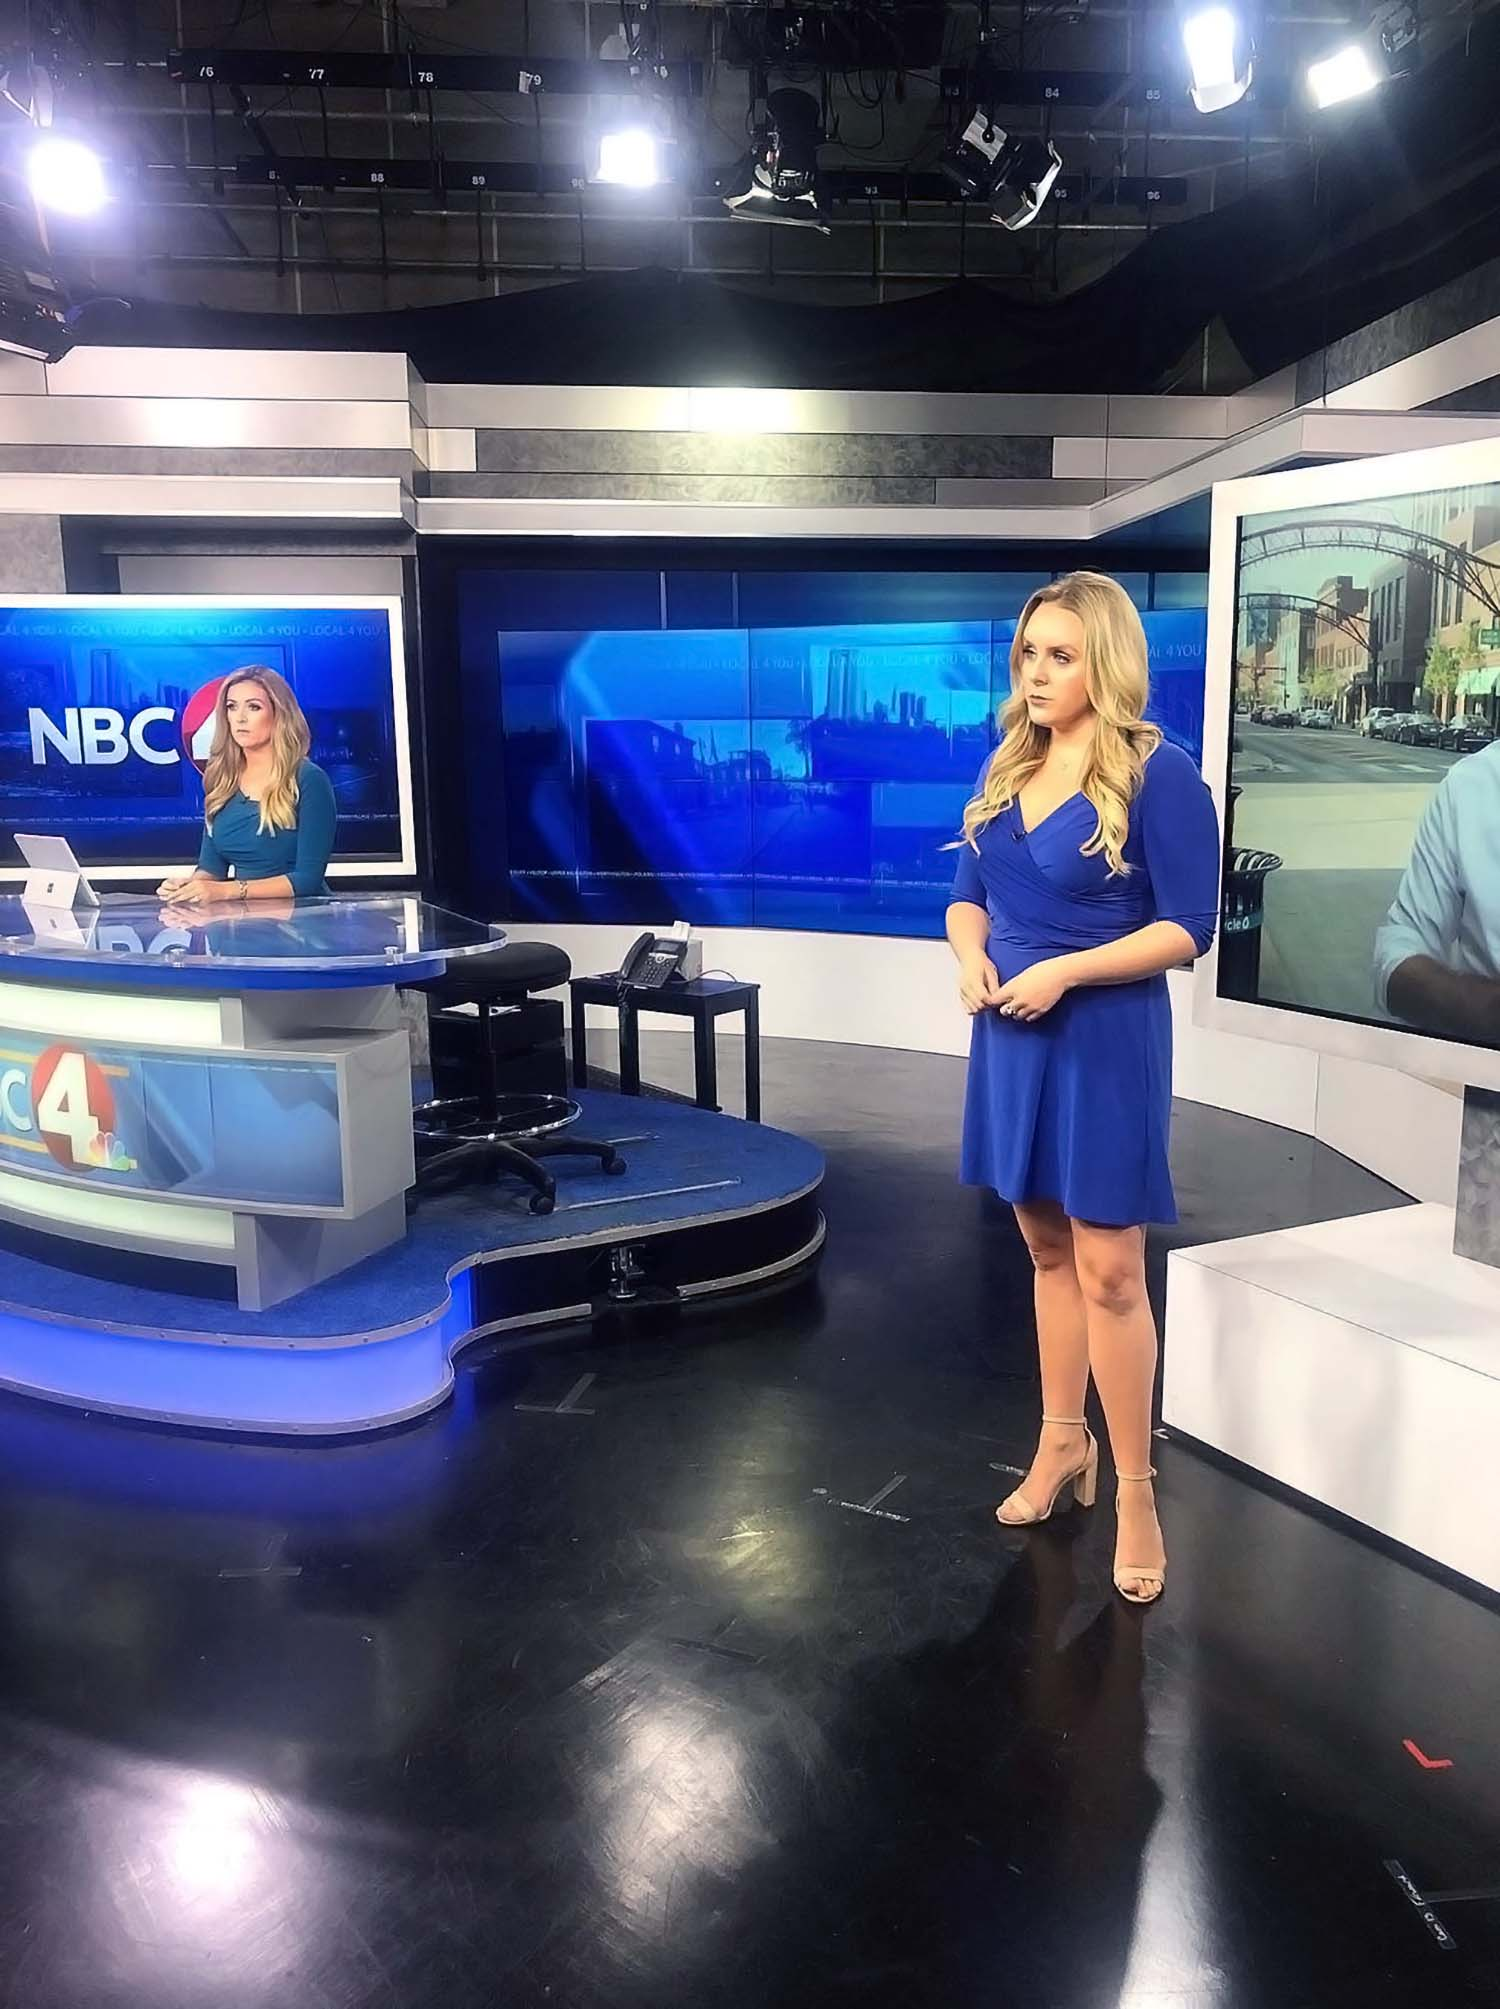 Danielle Aitable at NBC 4 studio